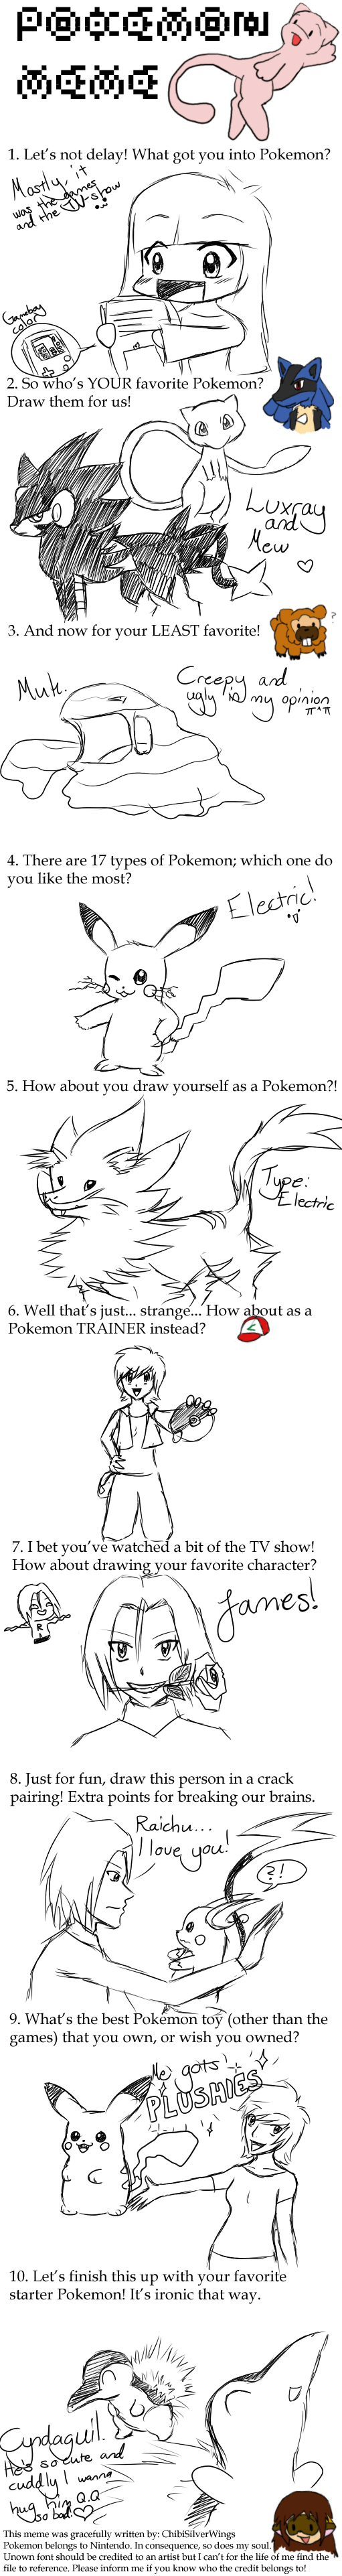 Pokemon meme by JenBlackWolf